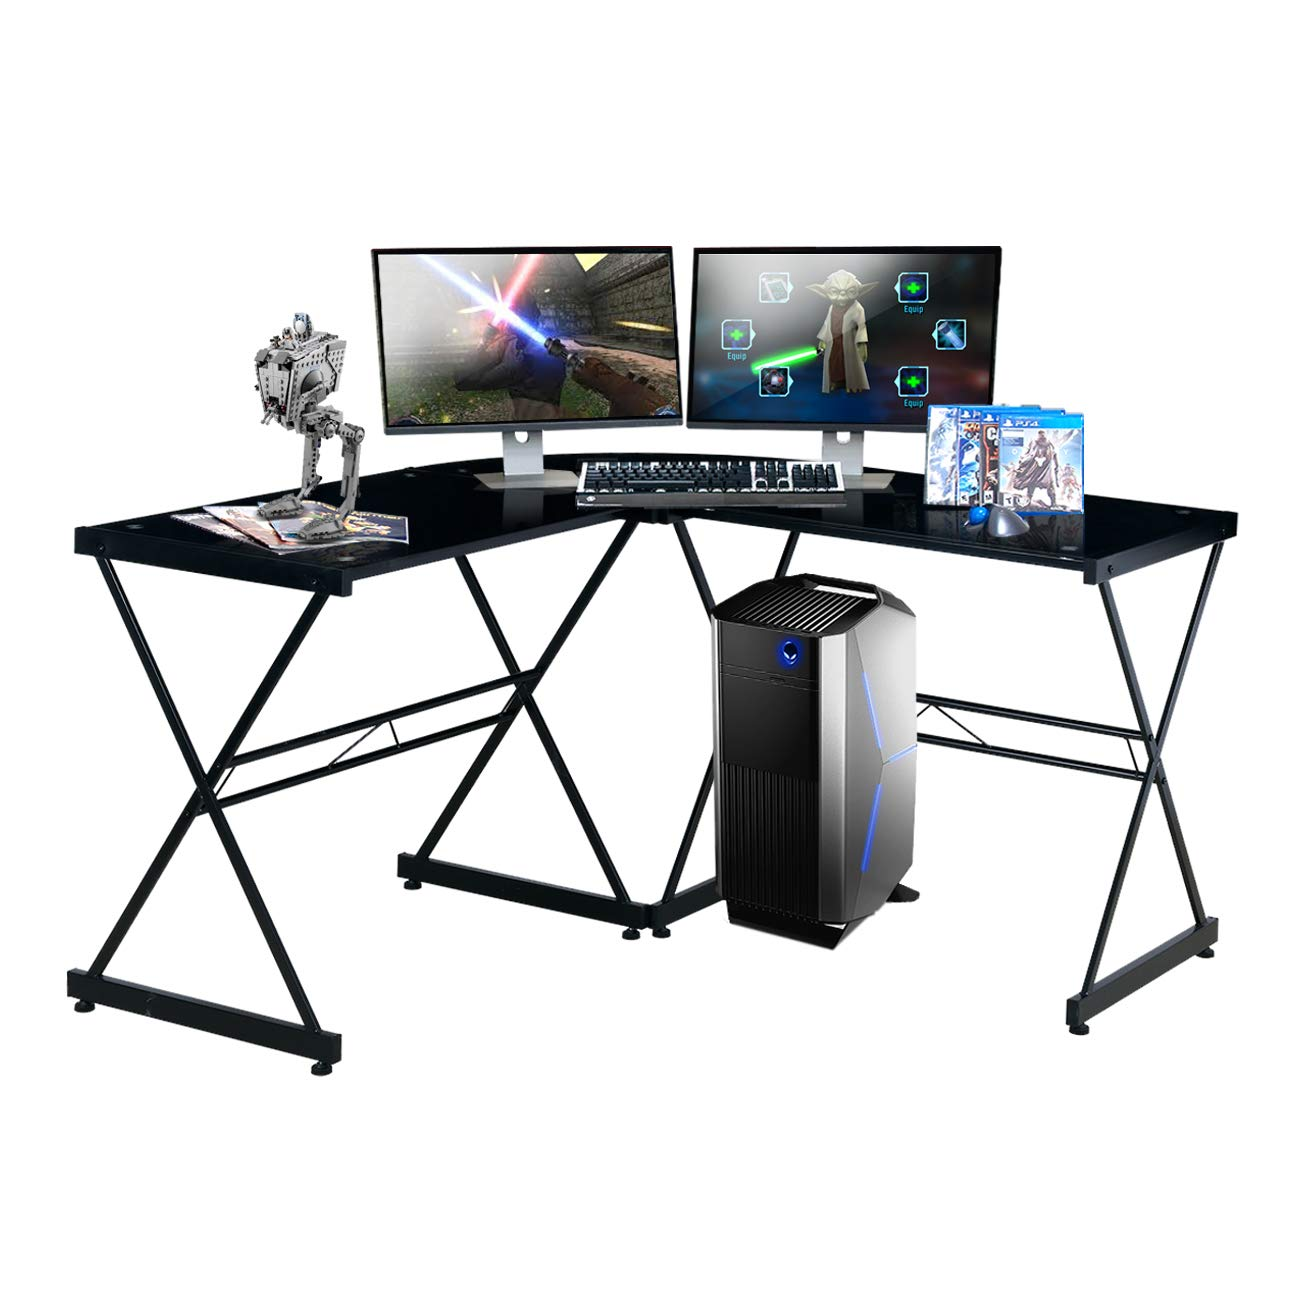 Techni sport Gaming Desk Collection Style Rigel Black - Multi-Monitor Gaming Setup - Scratch Resistant - Tempered Glass Desktop by Techni Sport